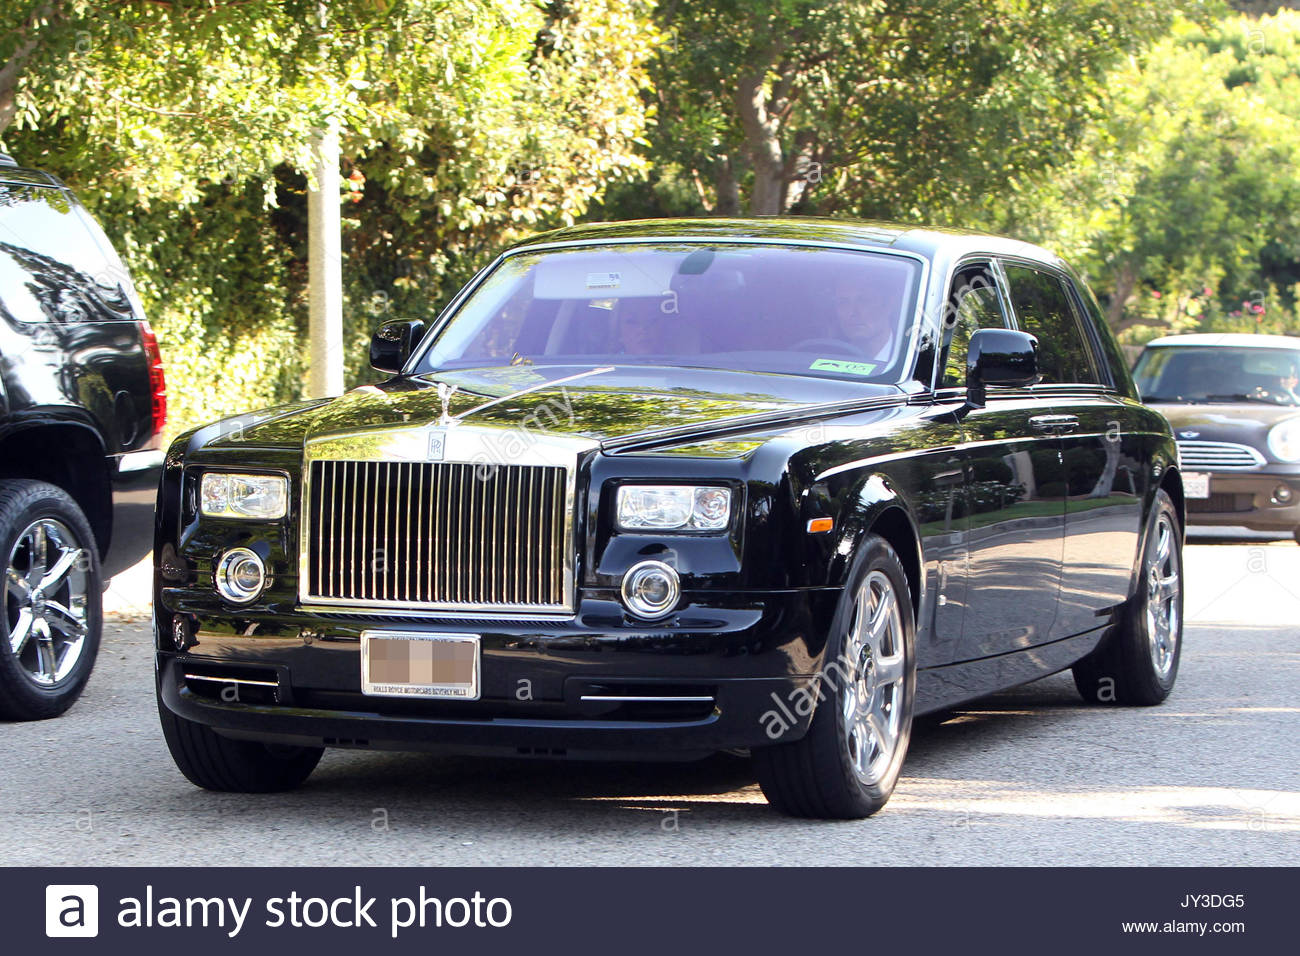 Simon Cowell S Rolls Royce Guests Arrive To Holly Valance